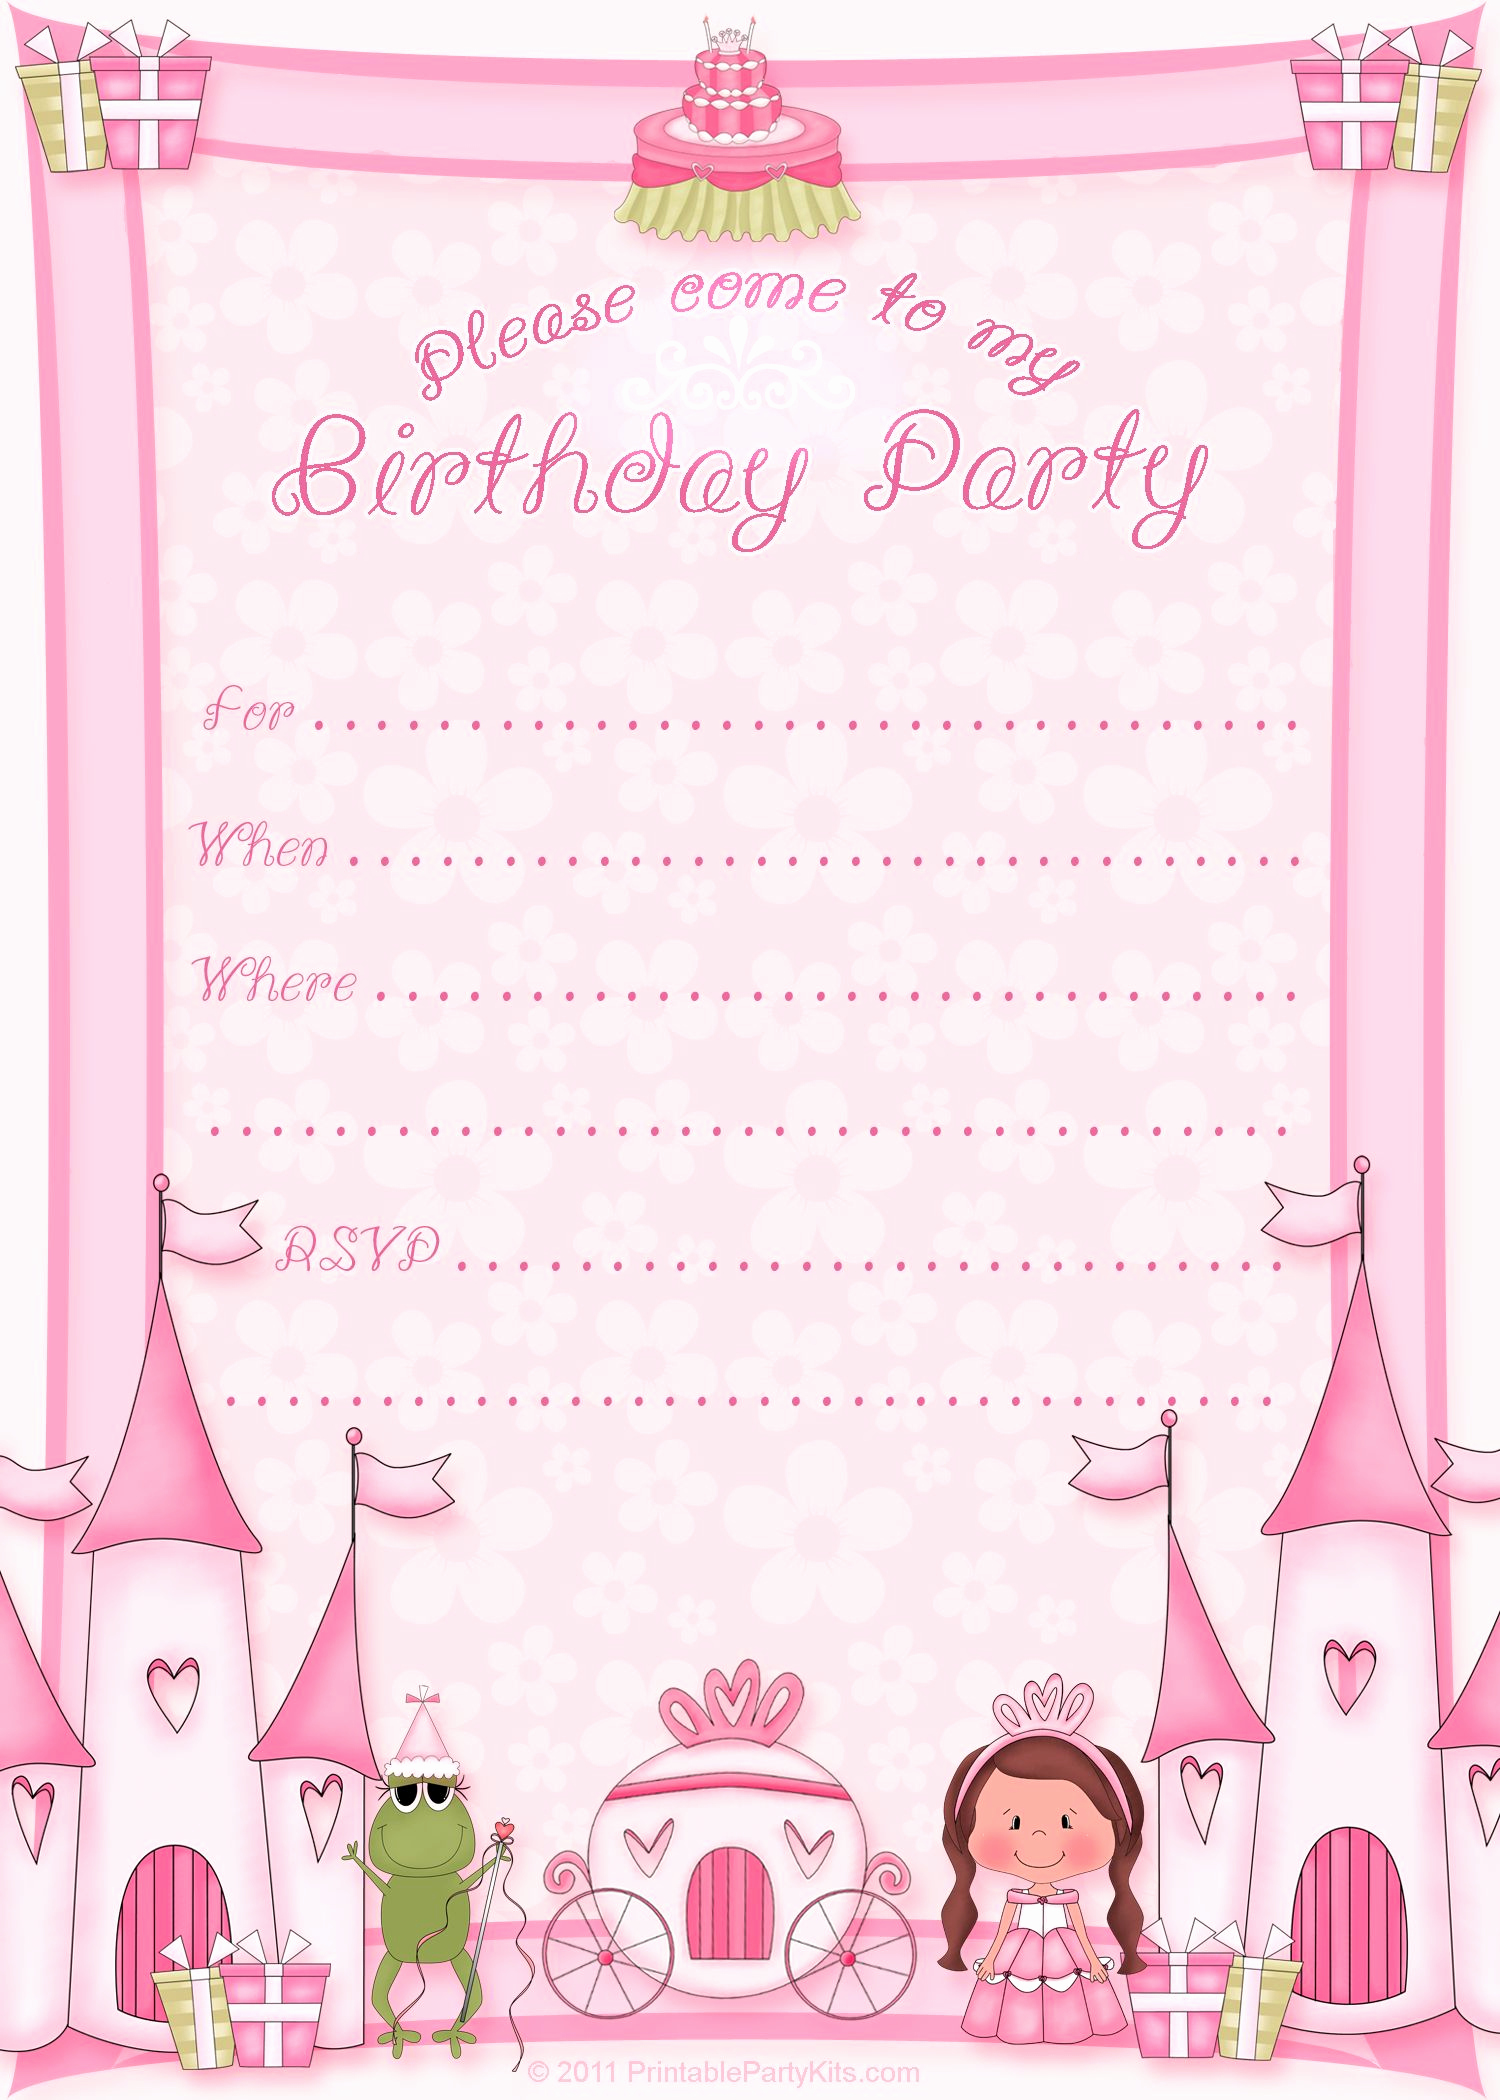 Printable Birthday Invitation Cards Best Of Free Printable Invitation Pinned for Kidfolio the